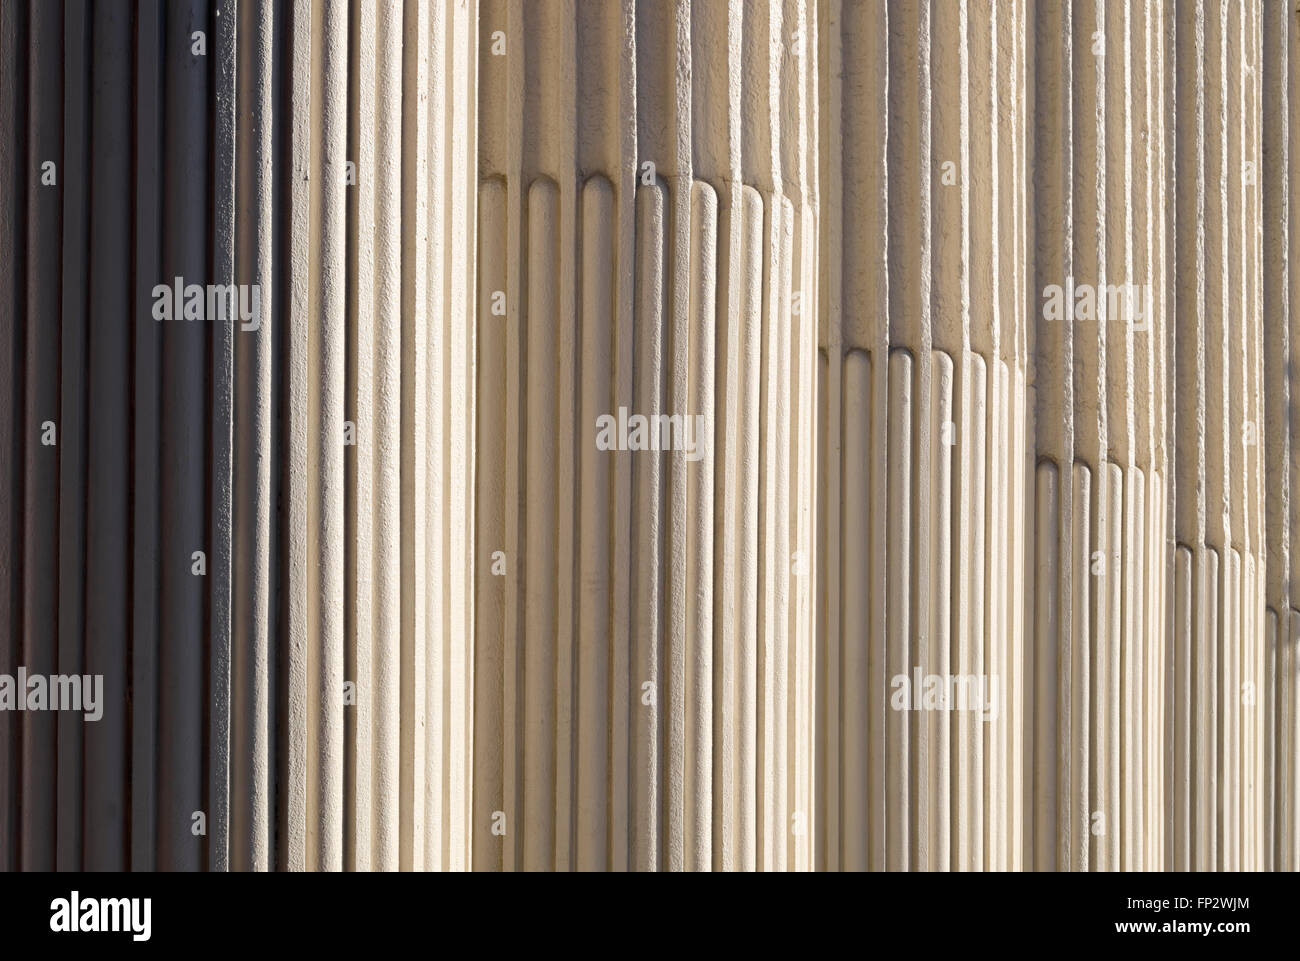 Pillars, Columns of Old Davidson County Courthouse Lexington North Carolina - Stock Image